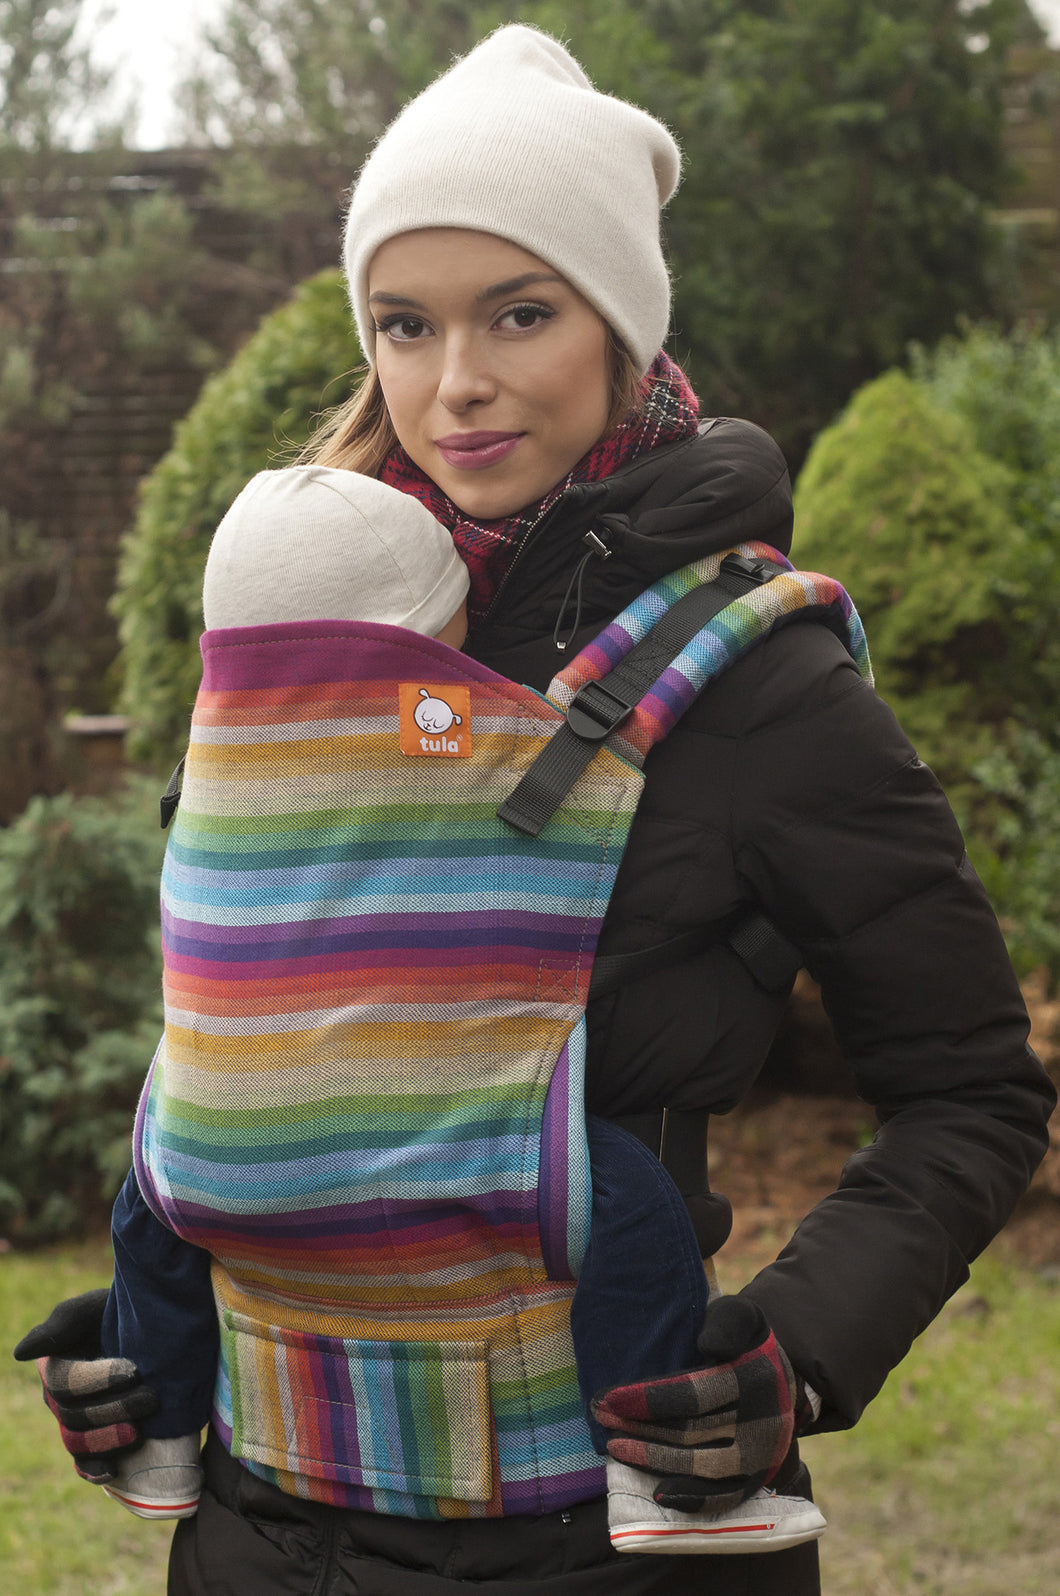 Rebell Rainbow Azul Capitan (Half Wrap Conversion) - Nosidełko Chustowe Toddler - Baby Tula